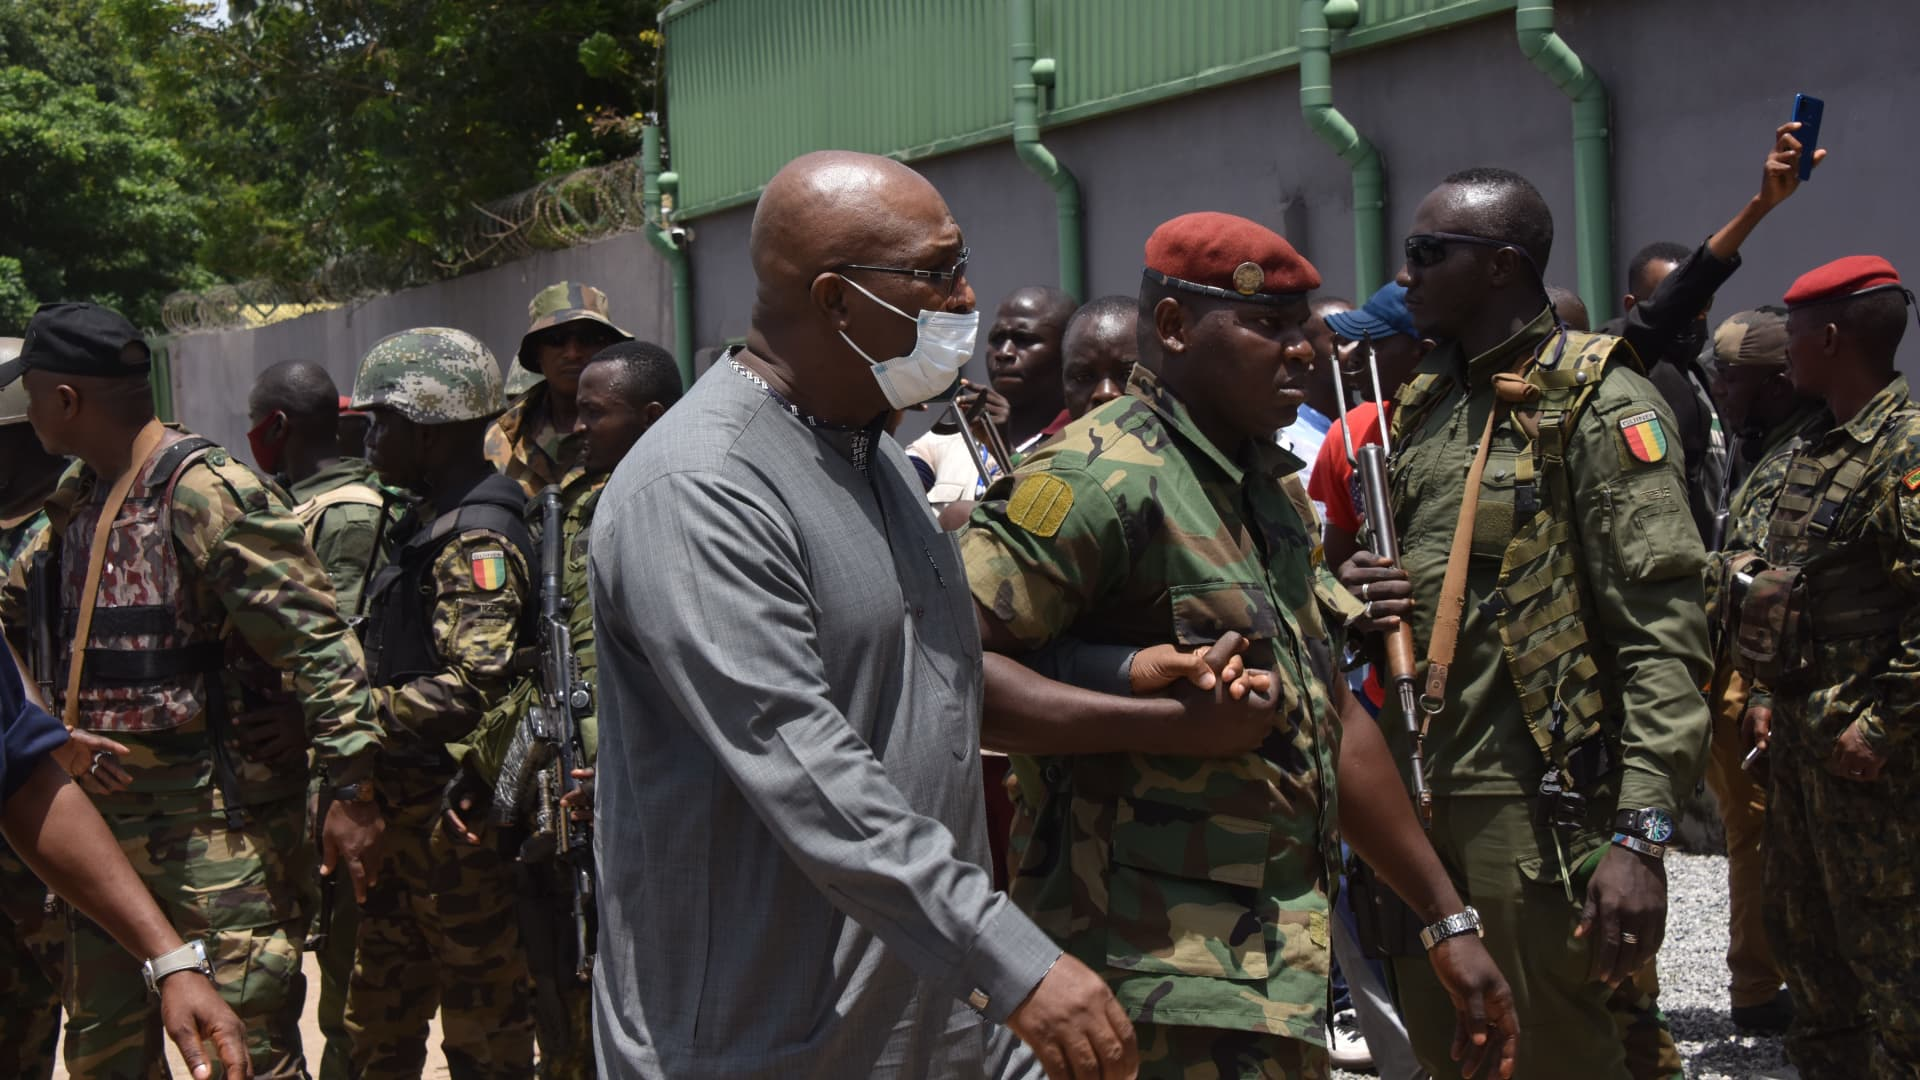 CONAKRY, Guinea - A government official escorted by members of Guinea's special forces walks into the Palace of the People in Conakry, Guinea, Sept. 6, 2021.